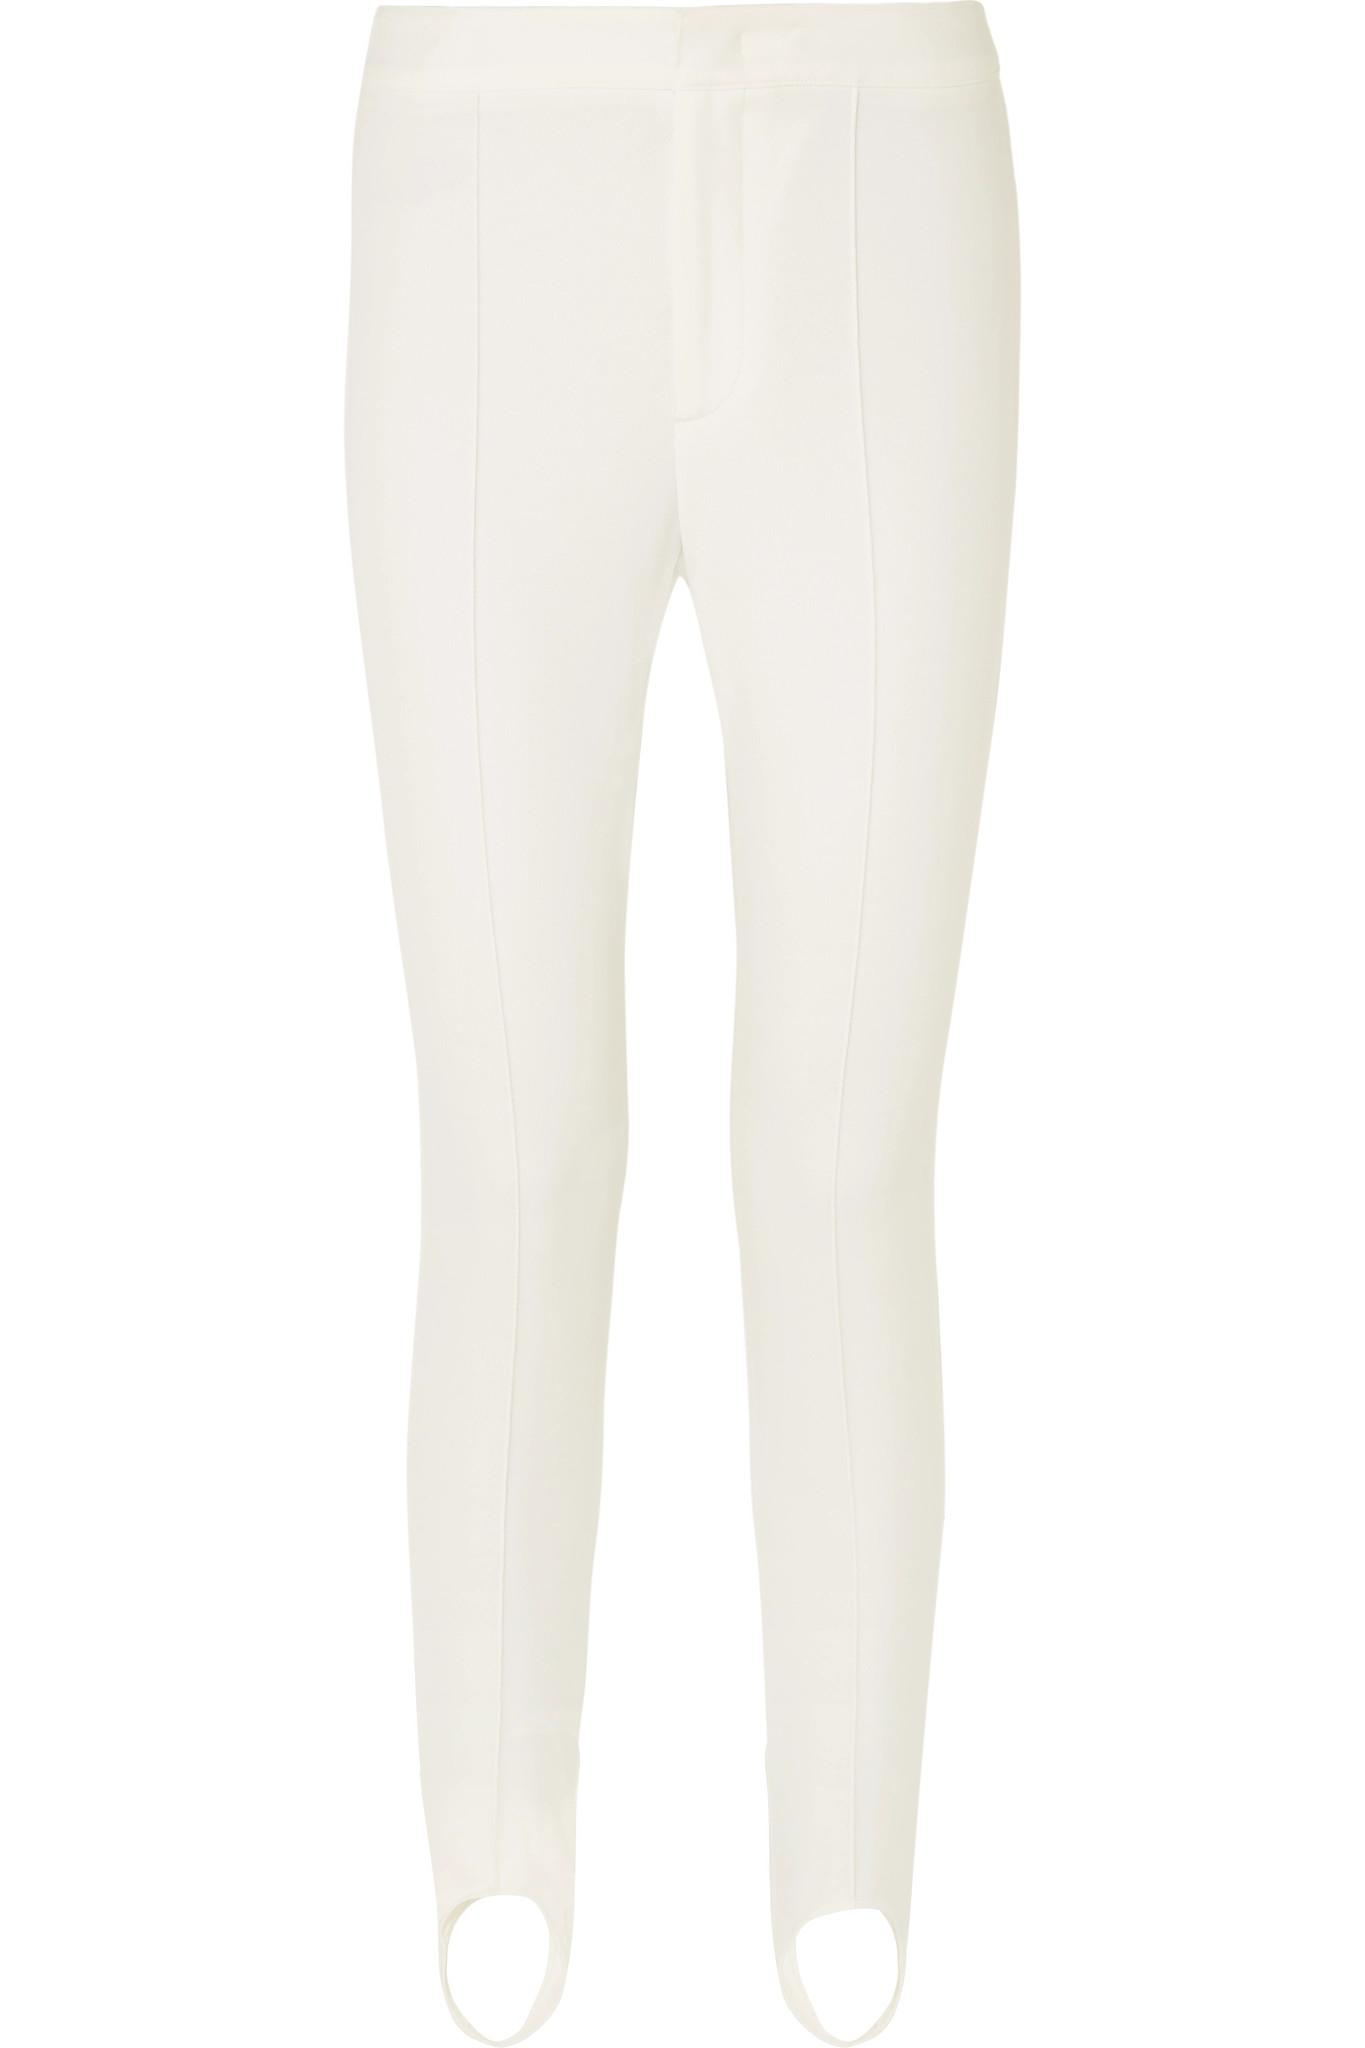 Lyst - Moncler Grenoble Stretch-twill Stirrup Ski Pants in White 5fc8928be